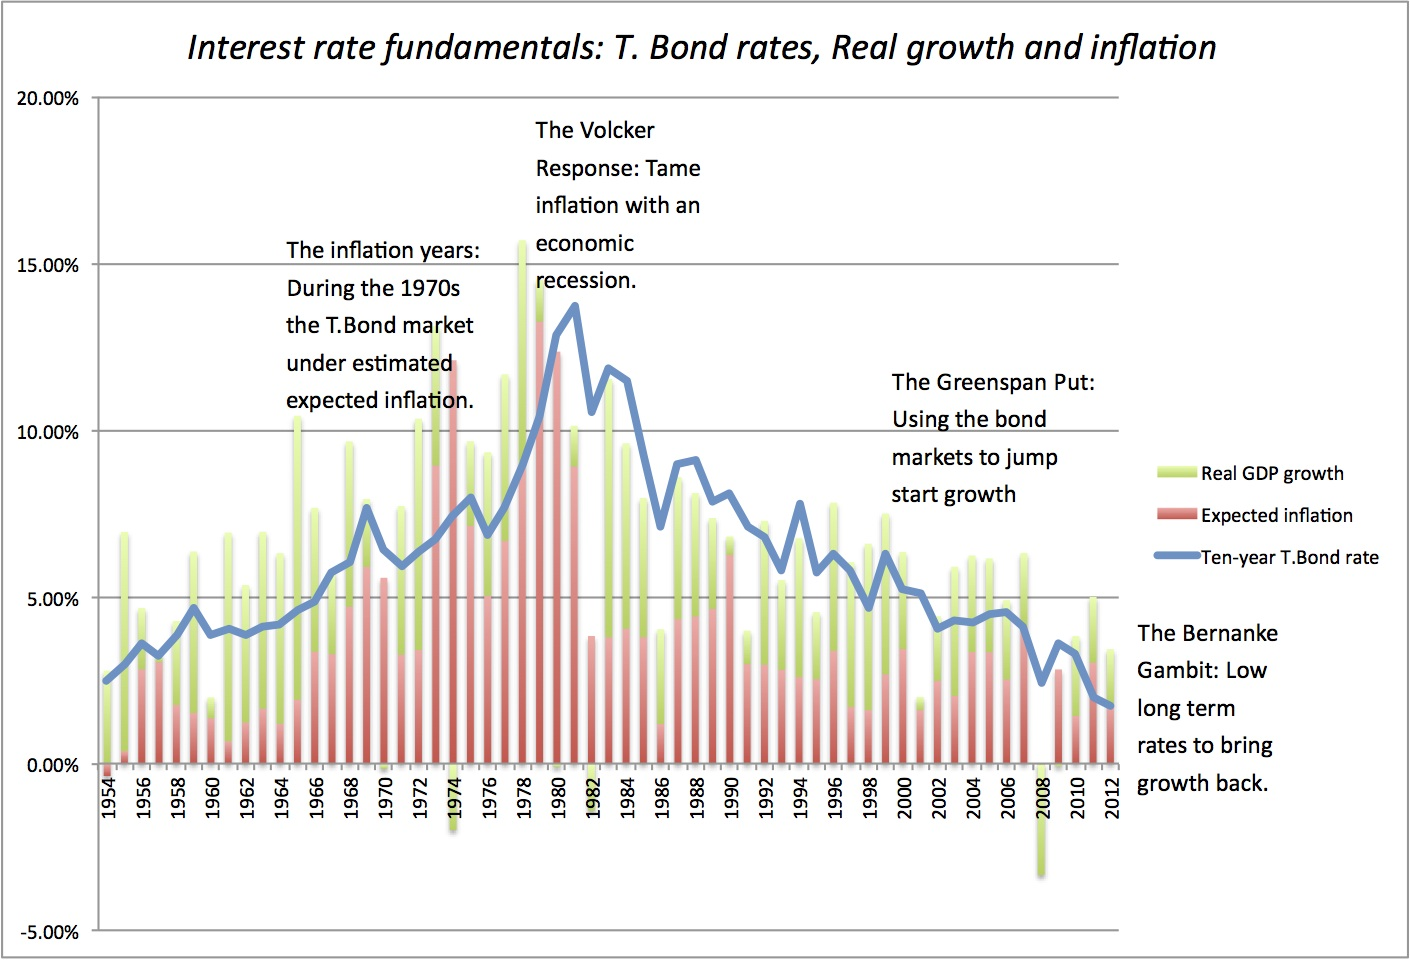 interest rates and inflation relationship to gdp